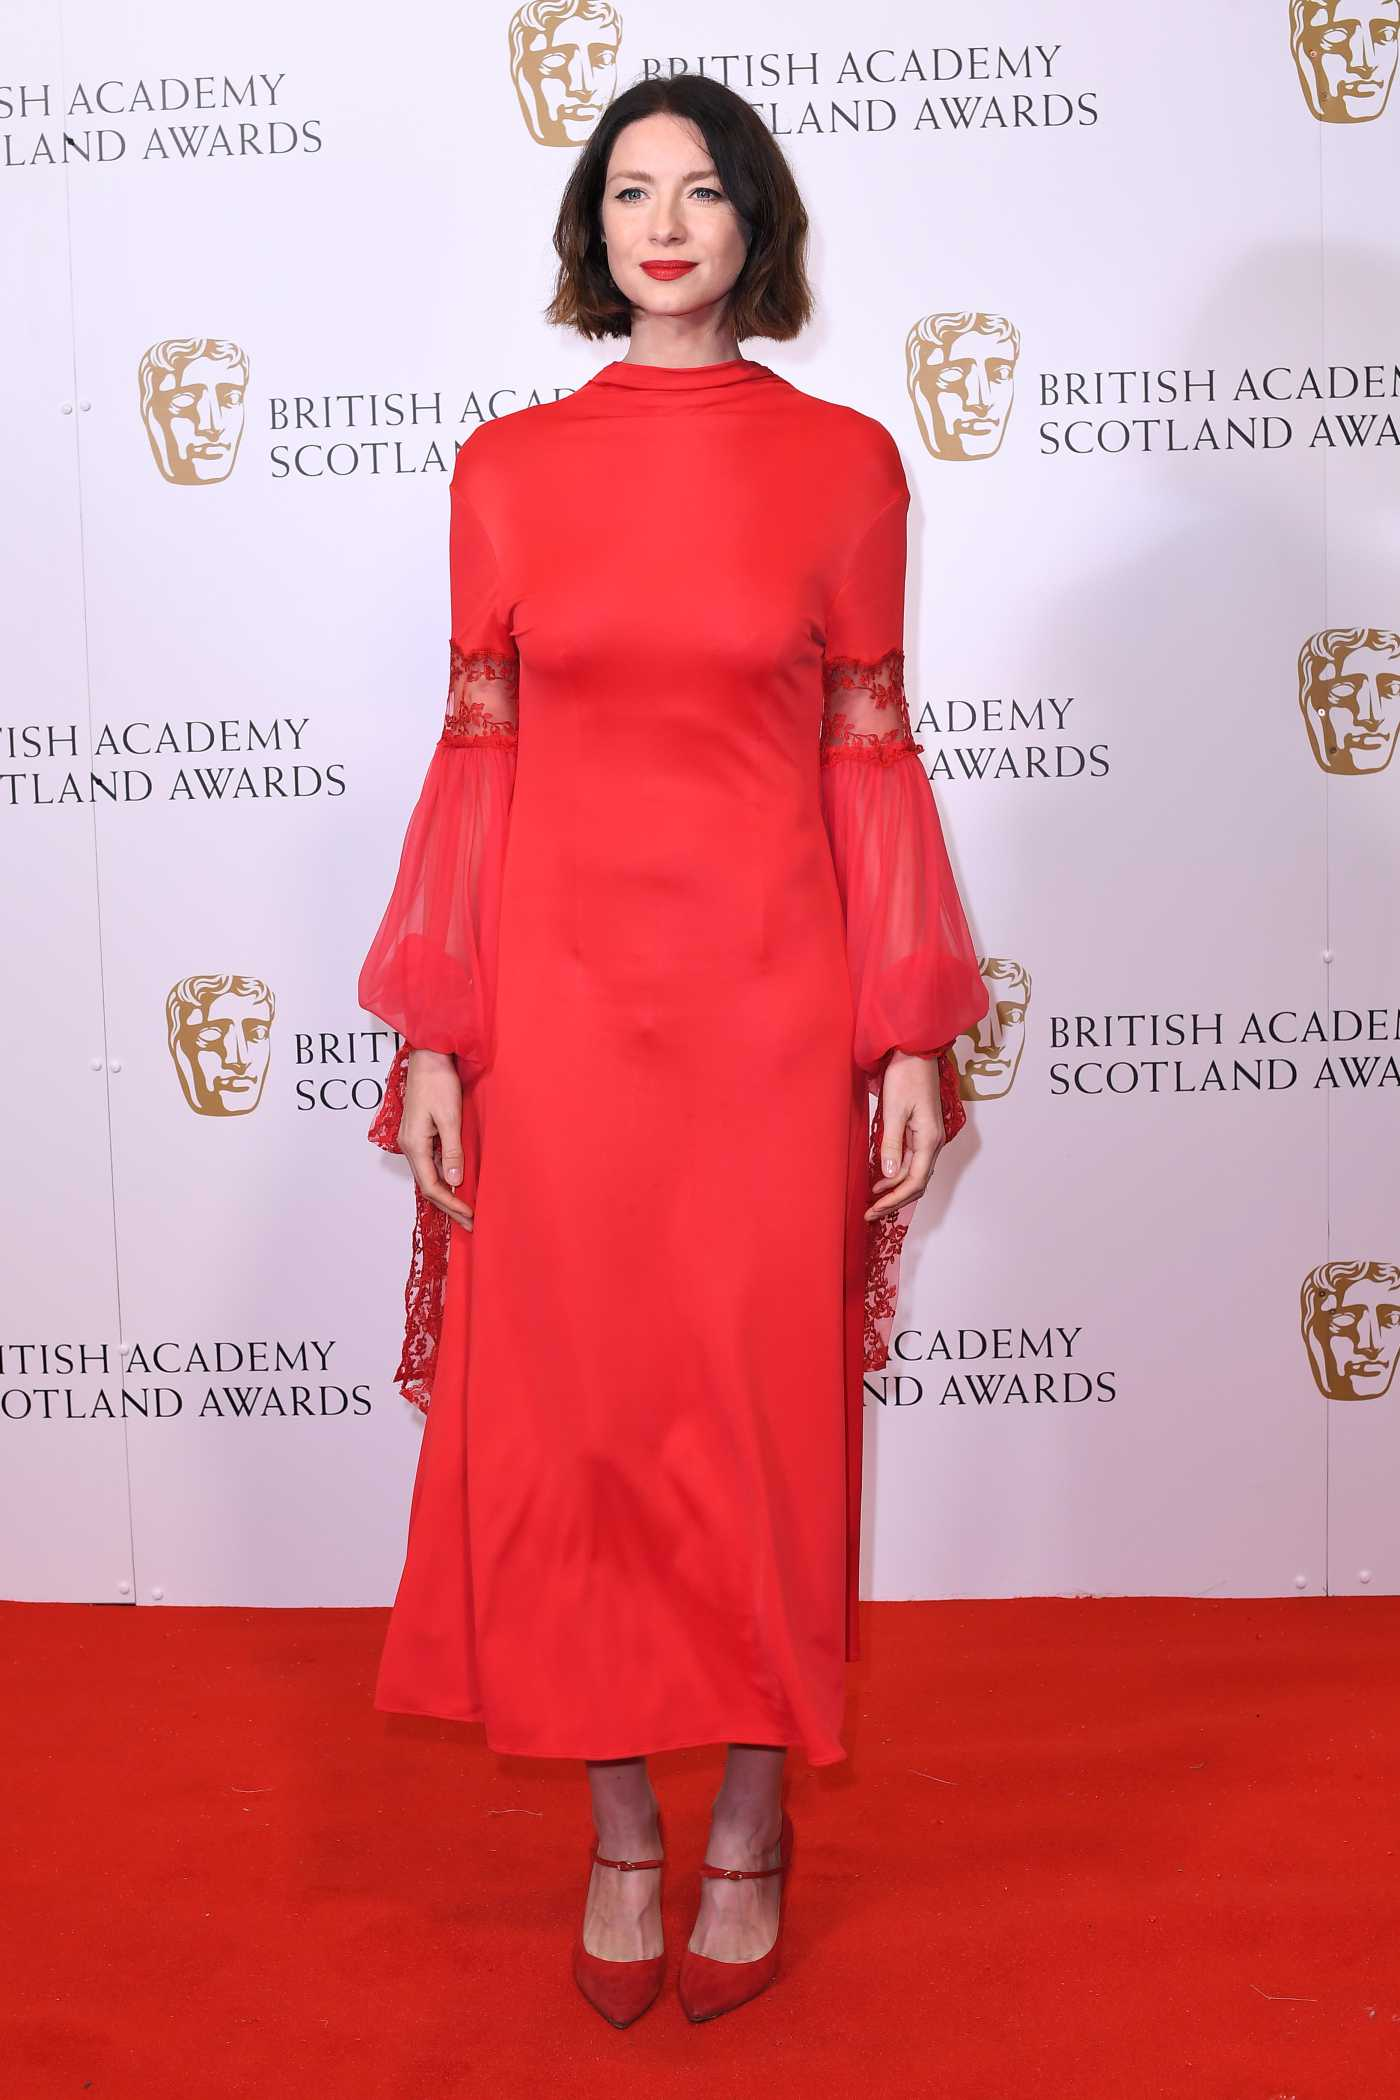 Caitriona Balfe Attends 2019 BAFTA Scotland Awards at the DoubleTree Hotel in Glasgow 11/03/2019